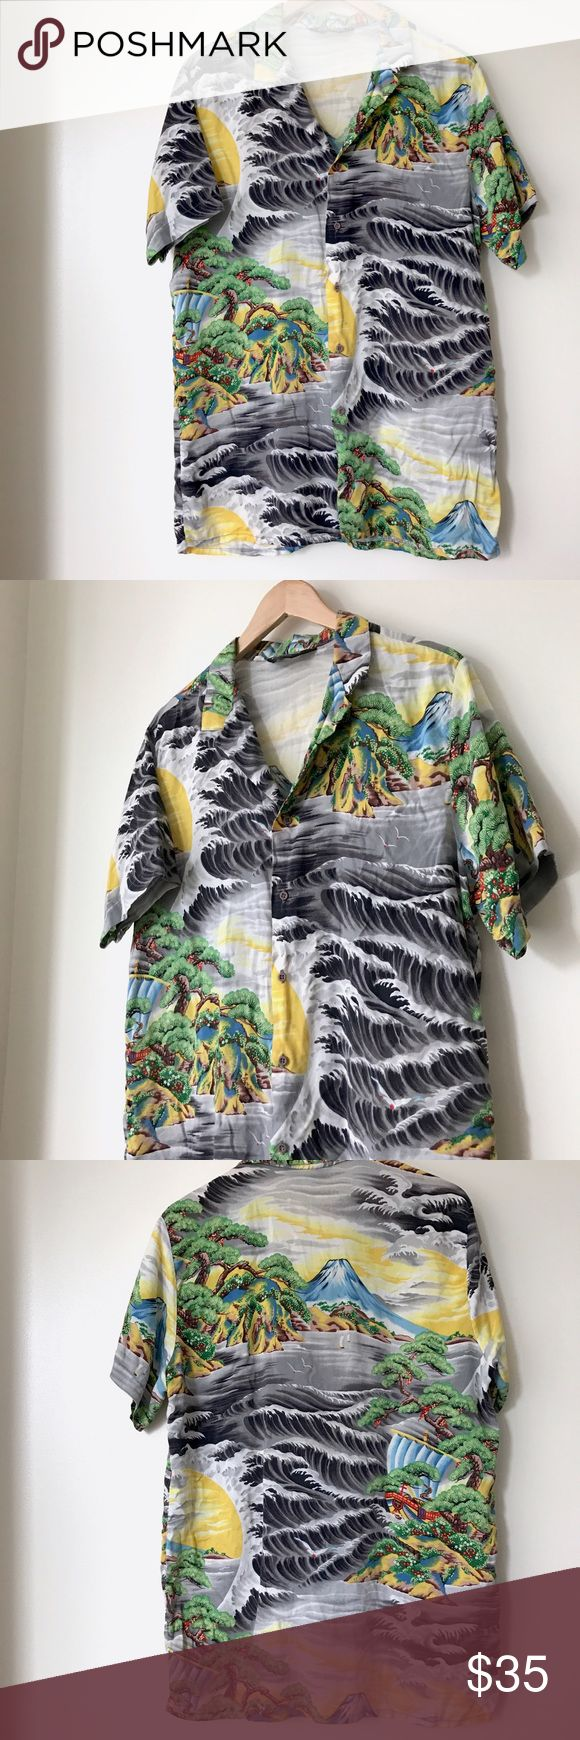 Rare 1970's Hutspah Vintage Hawaiian 🌺 Shirt Rare 1970's cotton print Hawaiian shirt by Hutspah. Has a tiny tear but unnoticeable with collar in place. Vintage Shirts Casual Button Down Shirts